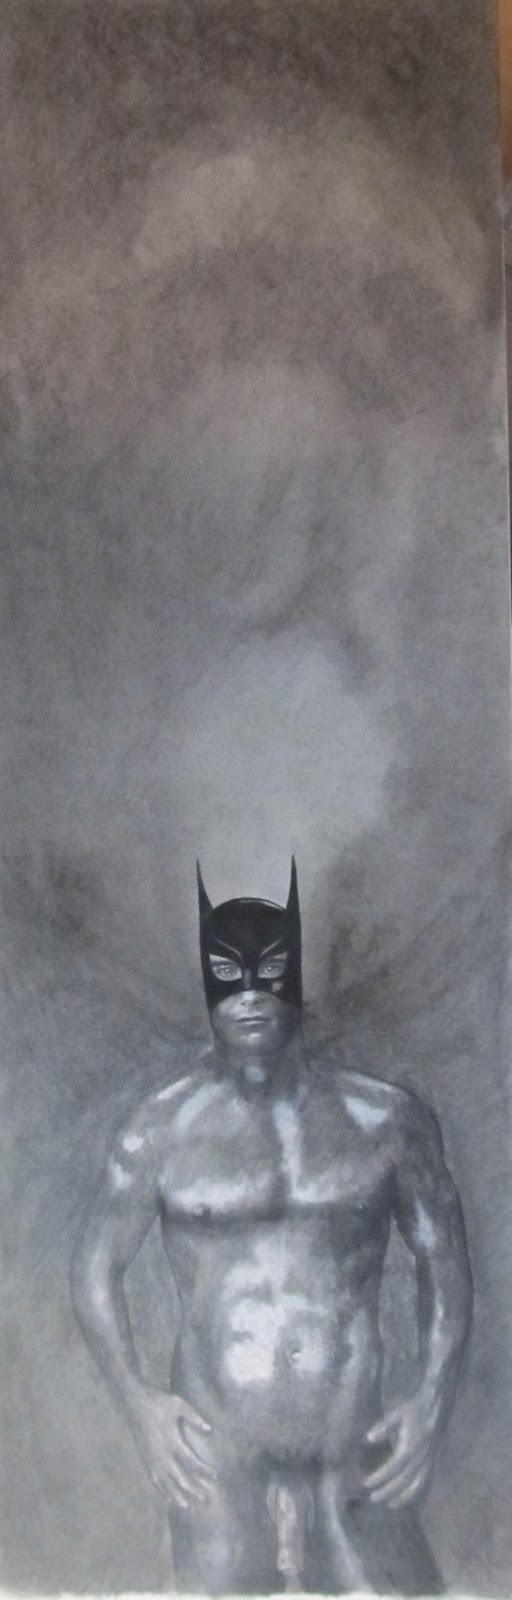 The Batman Naked - A drawing by F. Lennox Campello